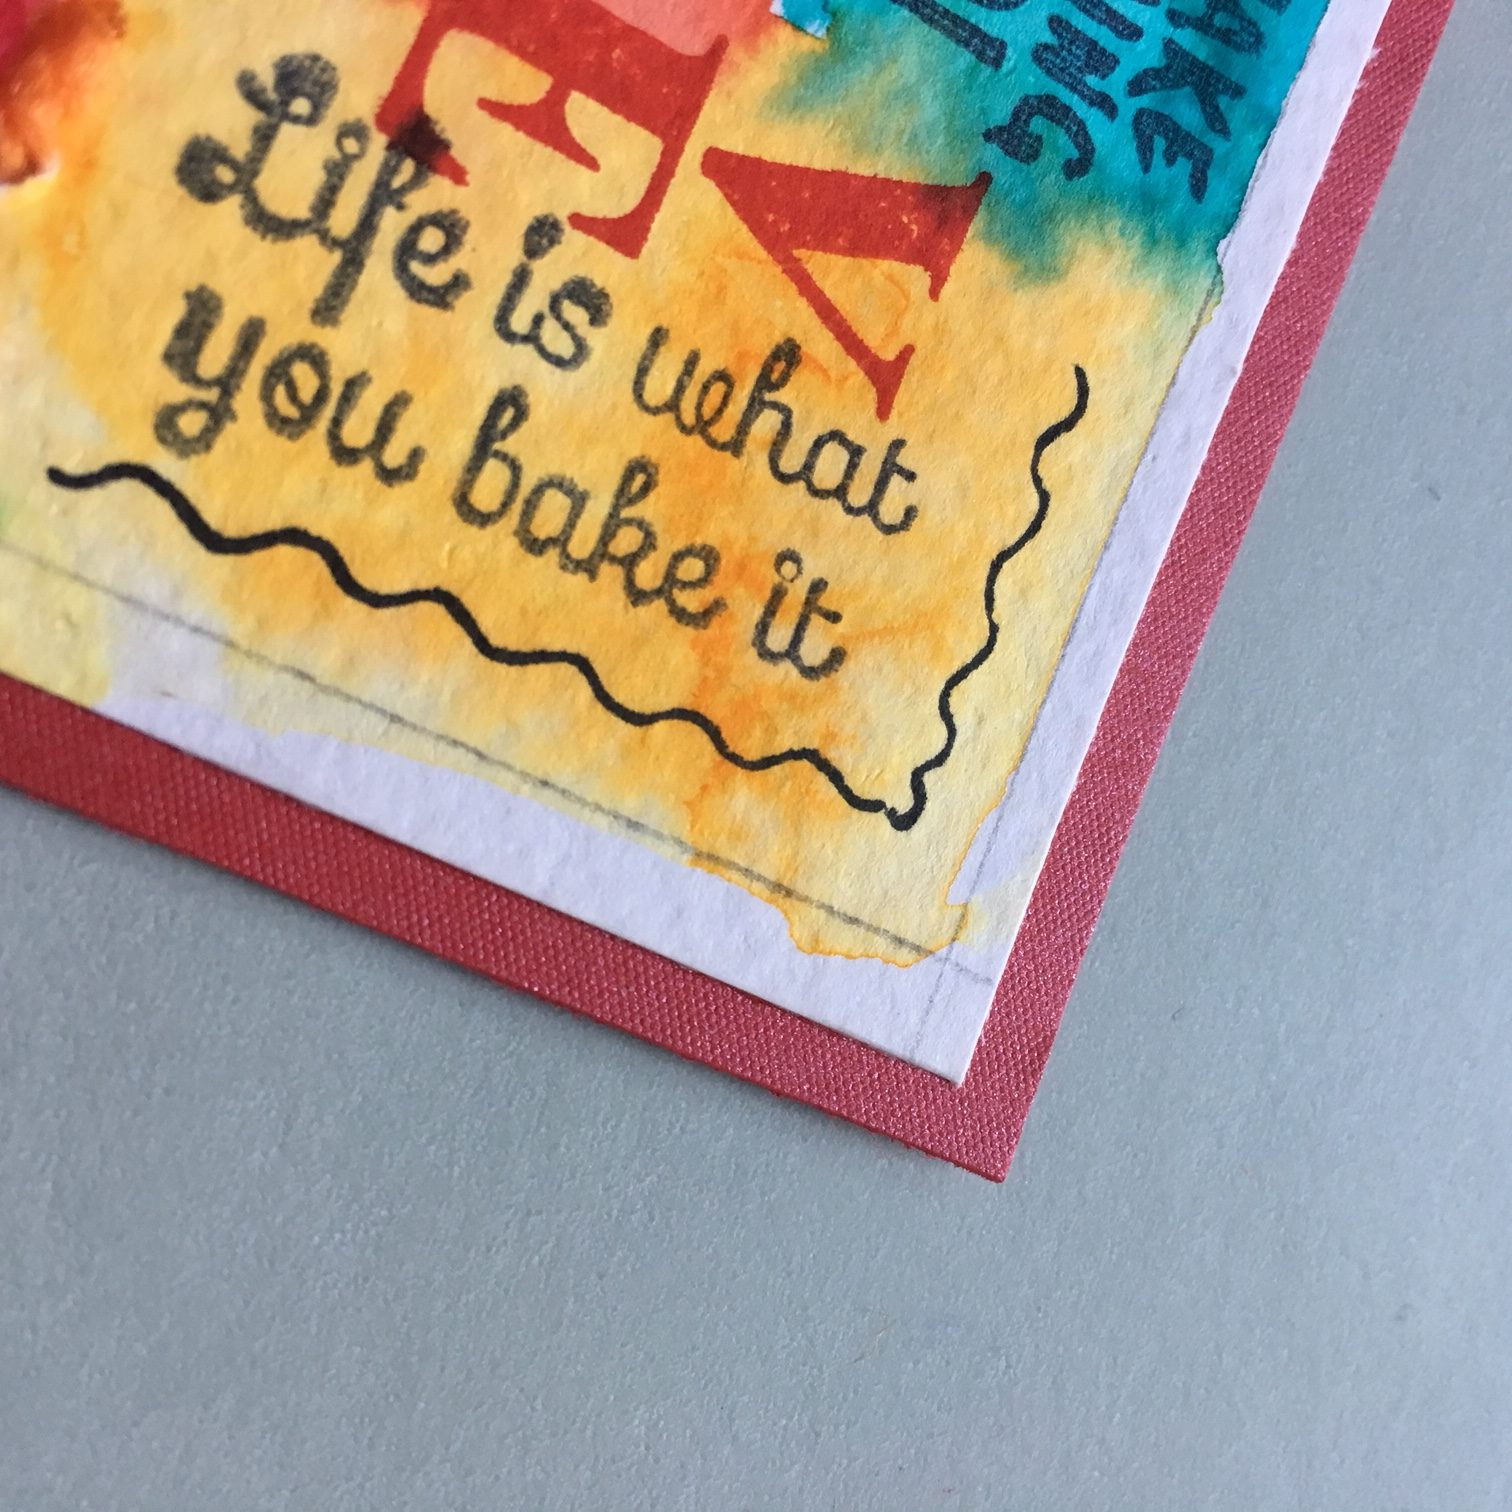 edges of the hippie greeting card